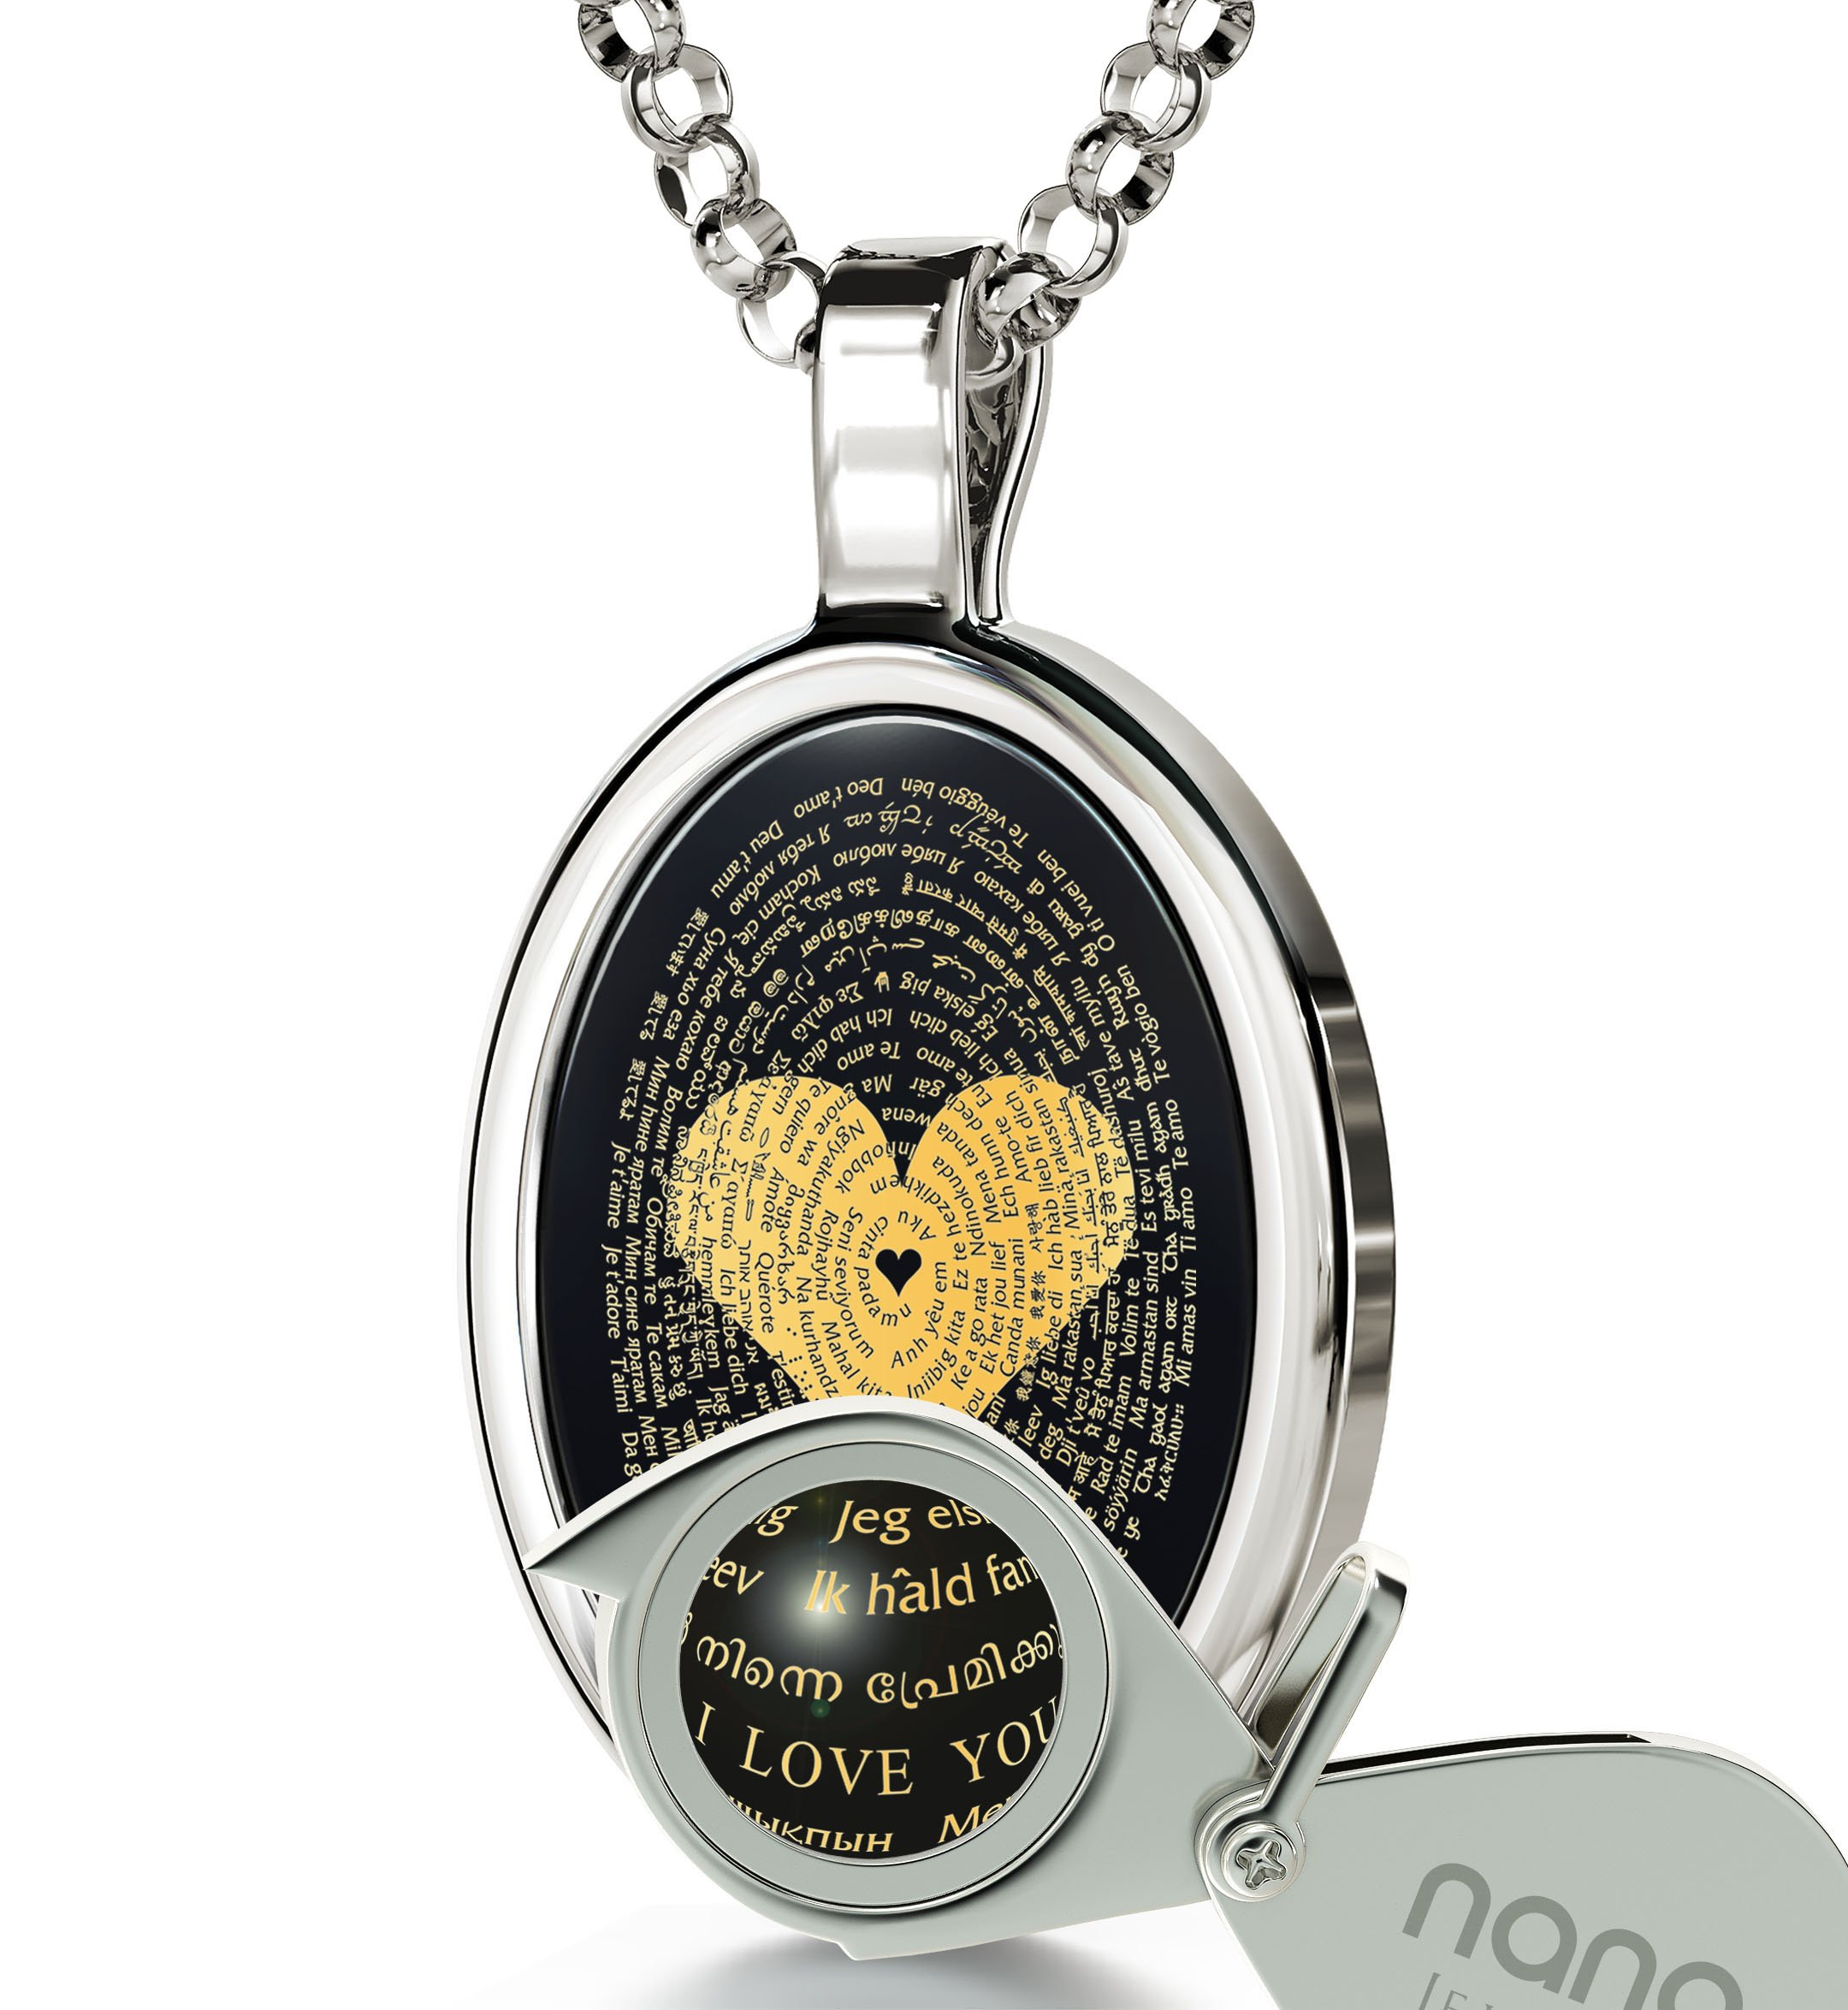 Love-Necklace-Inscribed-with-I-Love-You-in-120-Languages-in-24k-Gold-on-Onyx-Pendant-18-NanoStyle-Jewelry